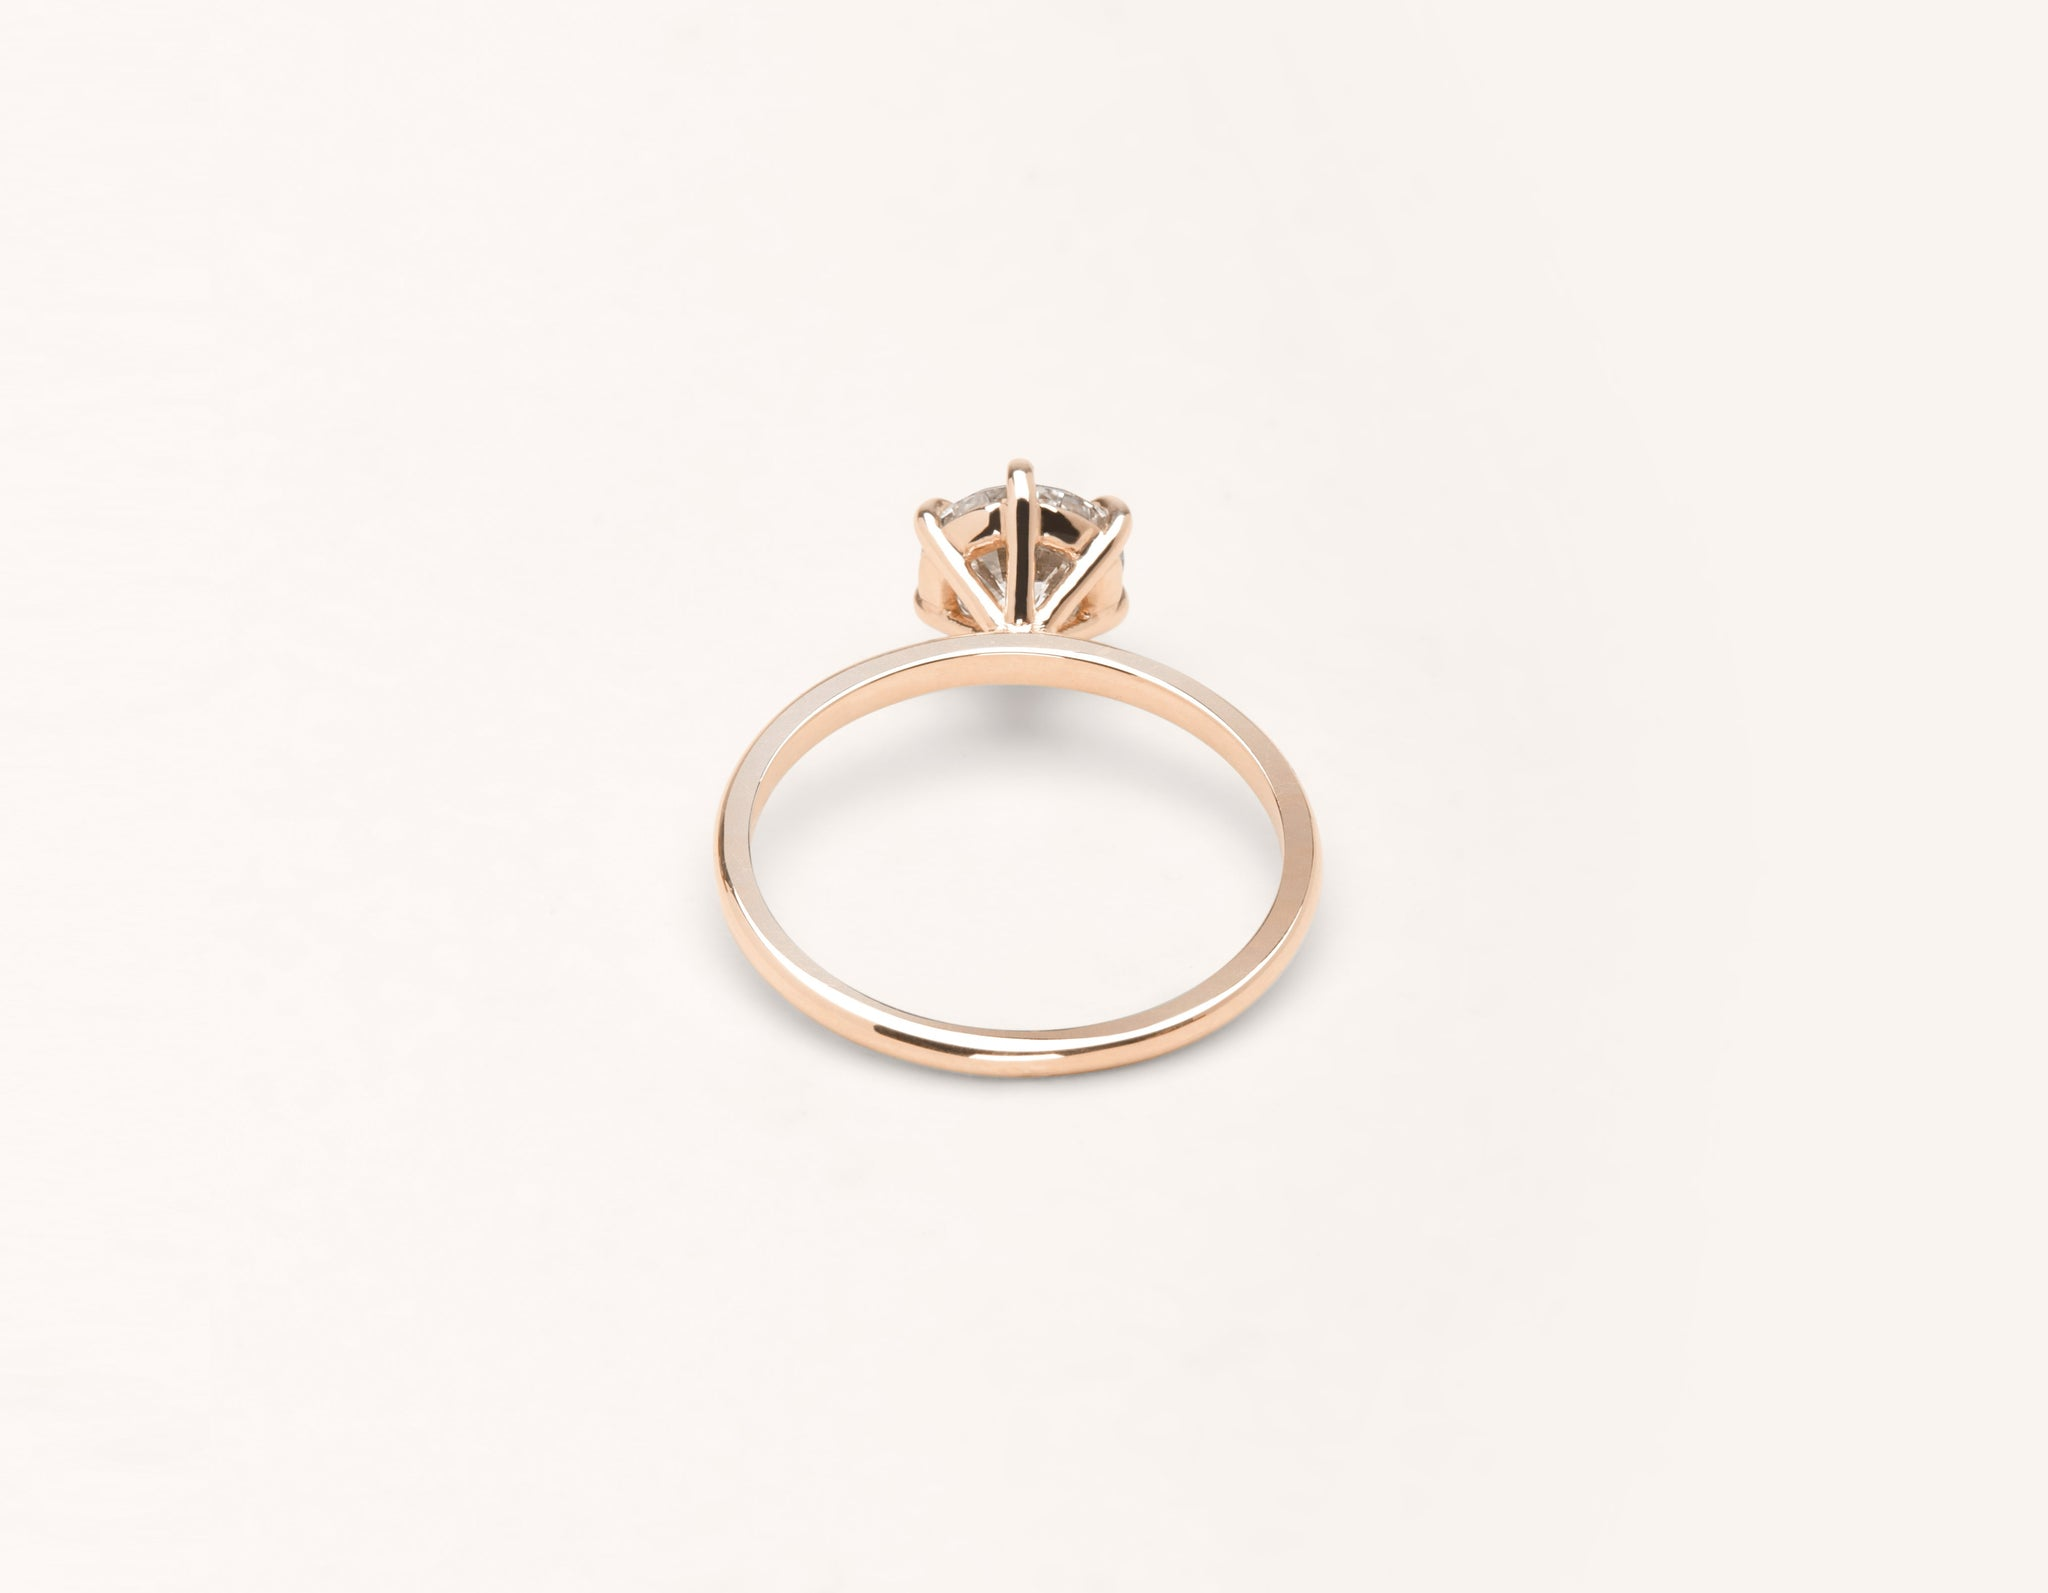 Vrai & Oro 18k solid rose gold Diamond engagement ring The Solitaire simple classic band 6 prong setting